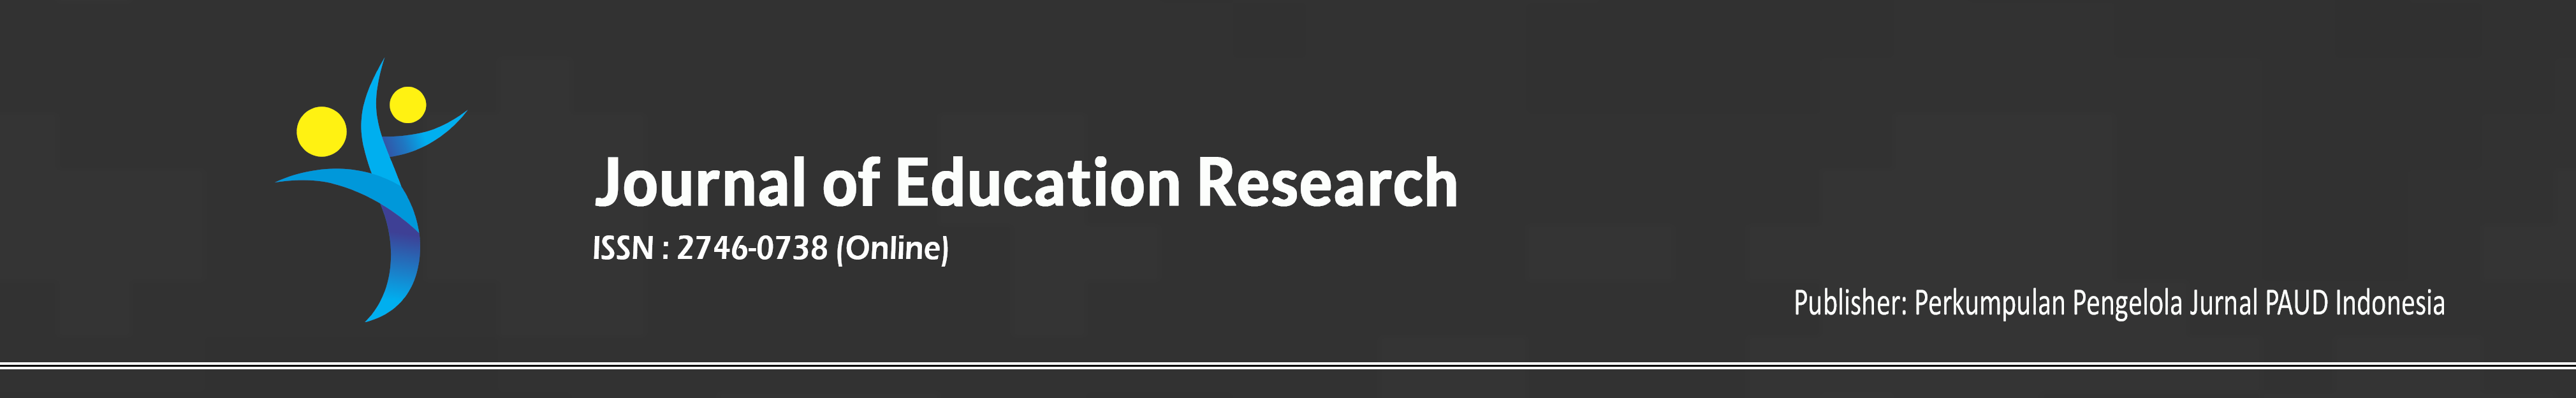 Journal of Education Research